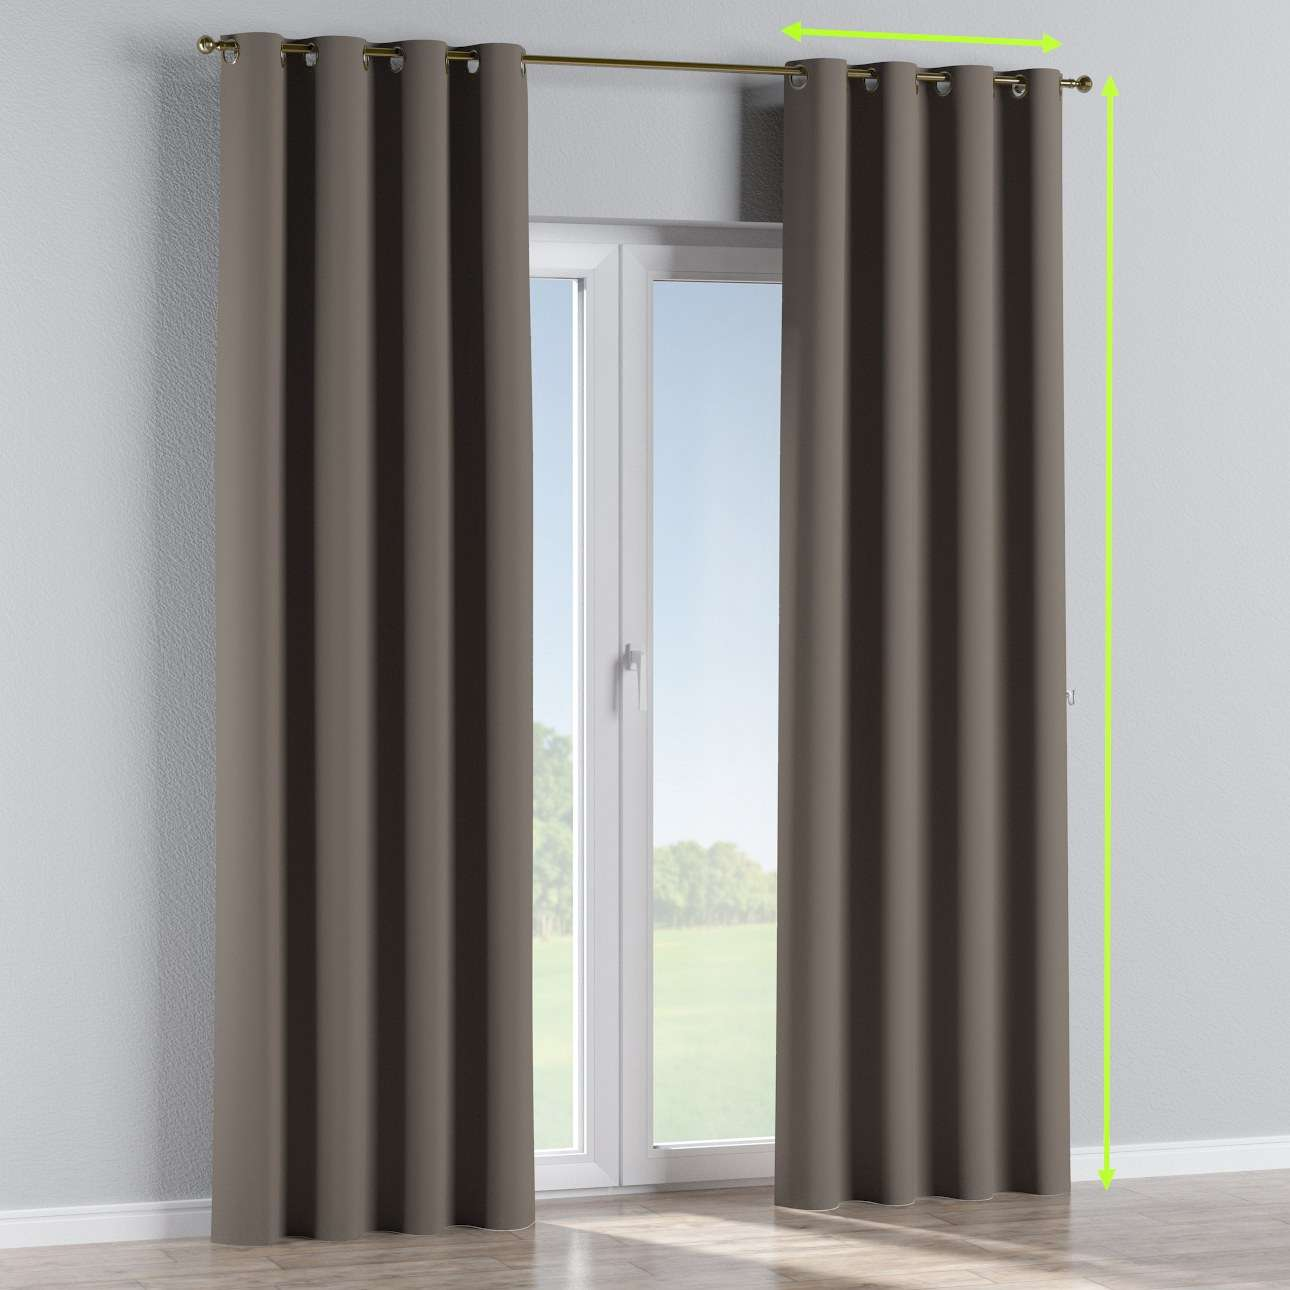 Eyelet curtain in collection Blackout, fabric: 269-80